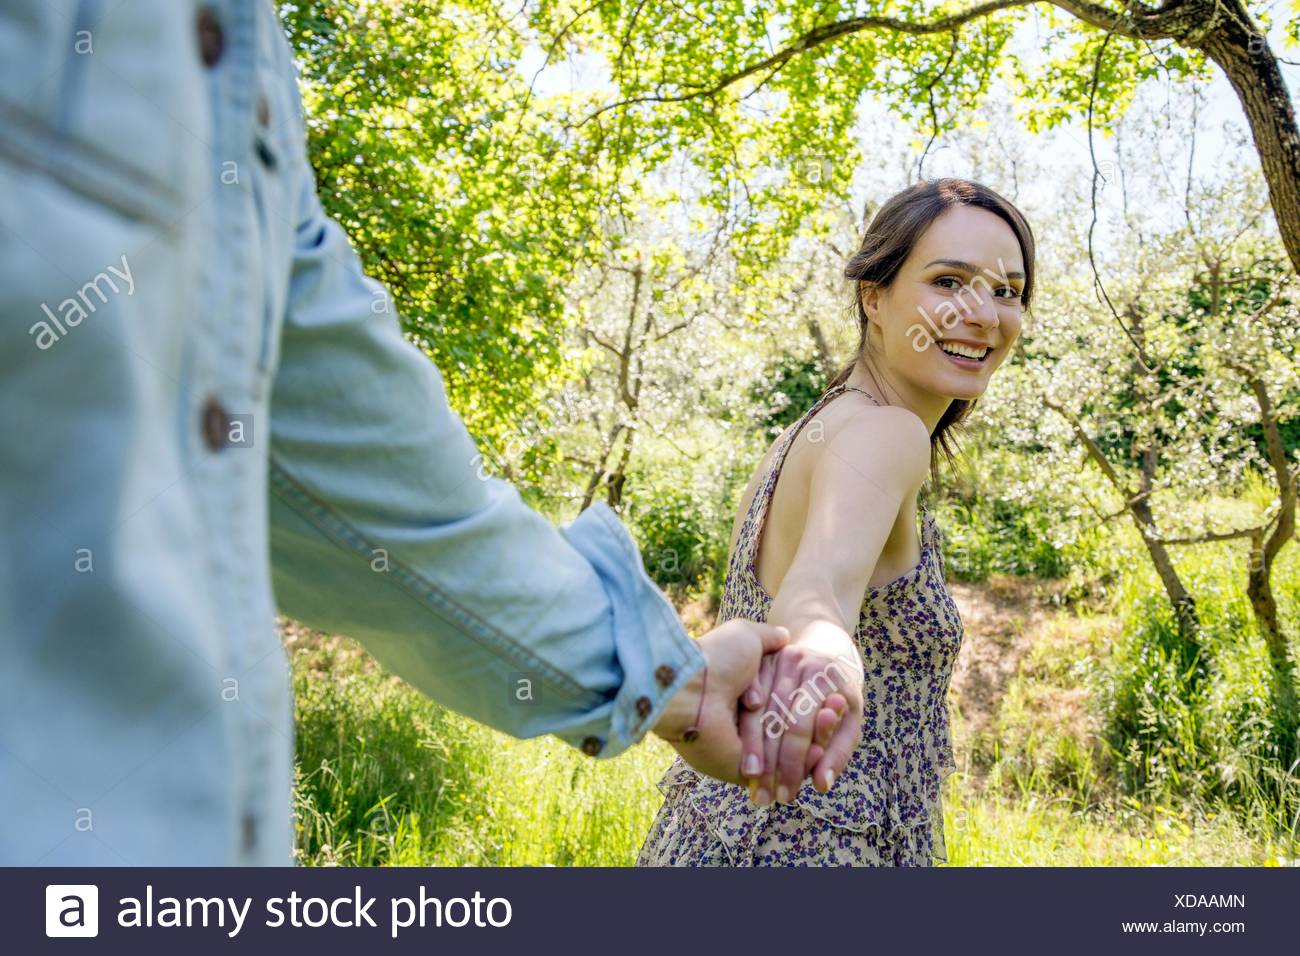 Young woman leading young man through forest, holding hand - Stock Image